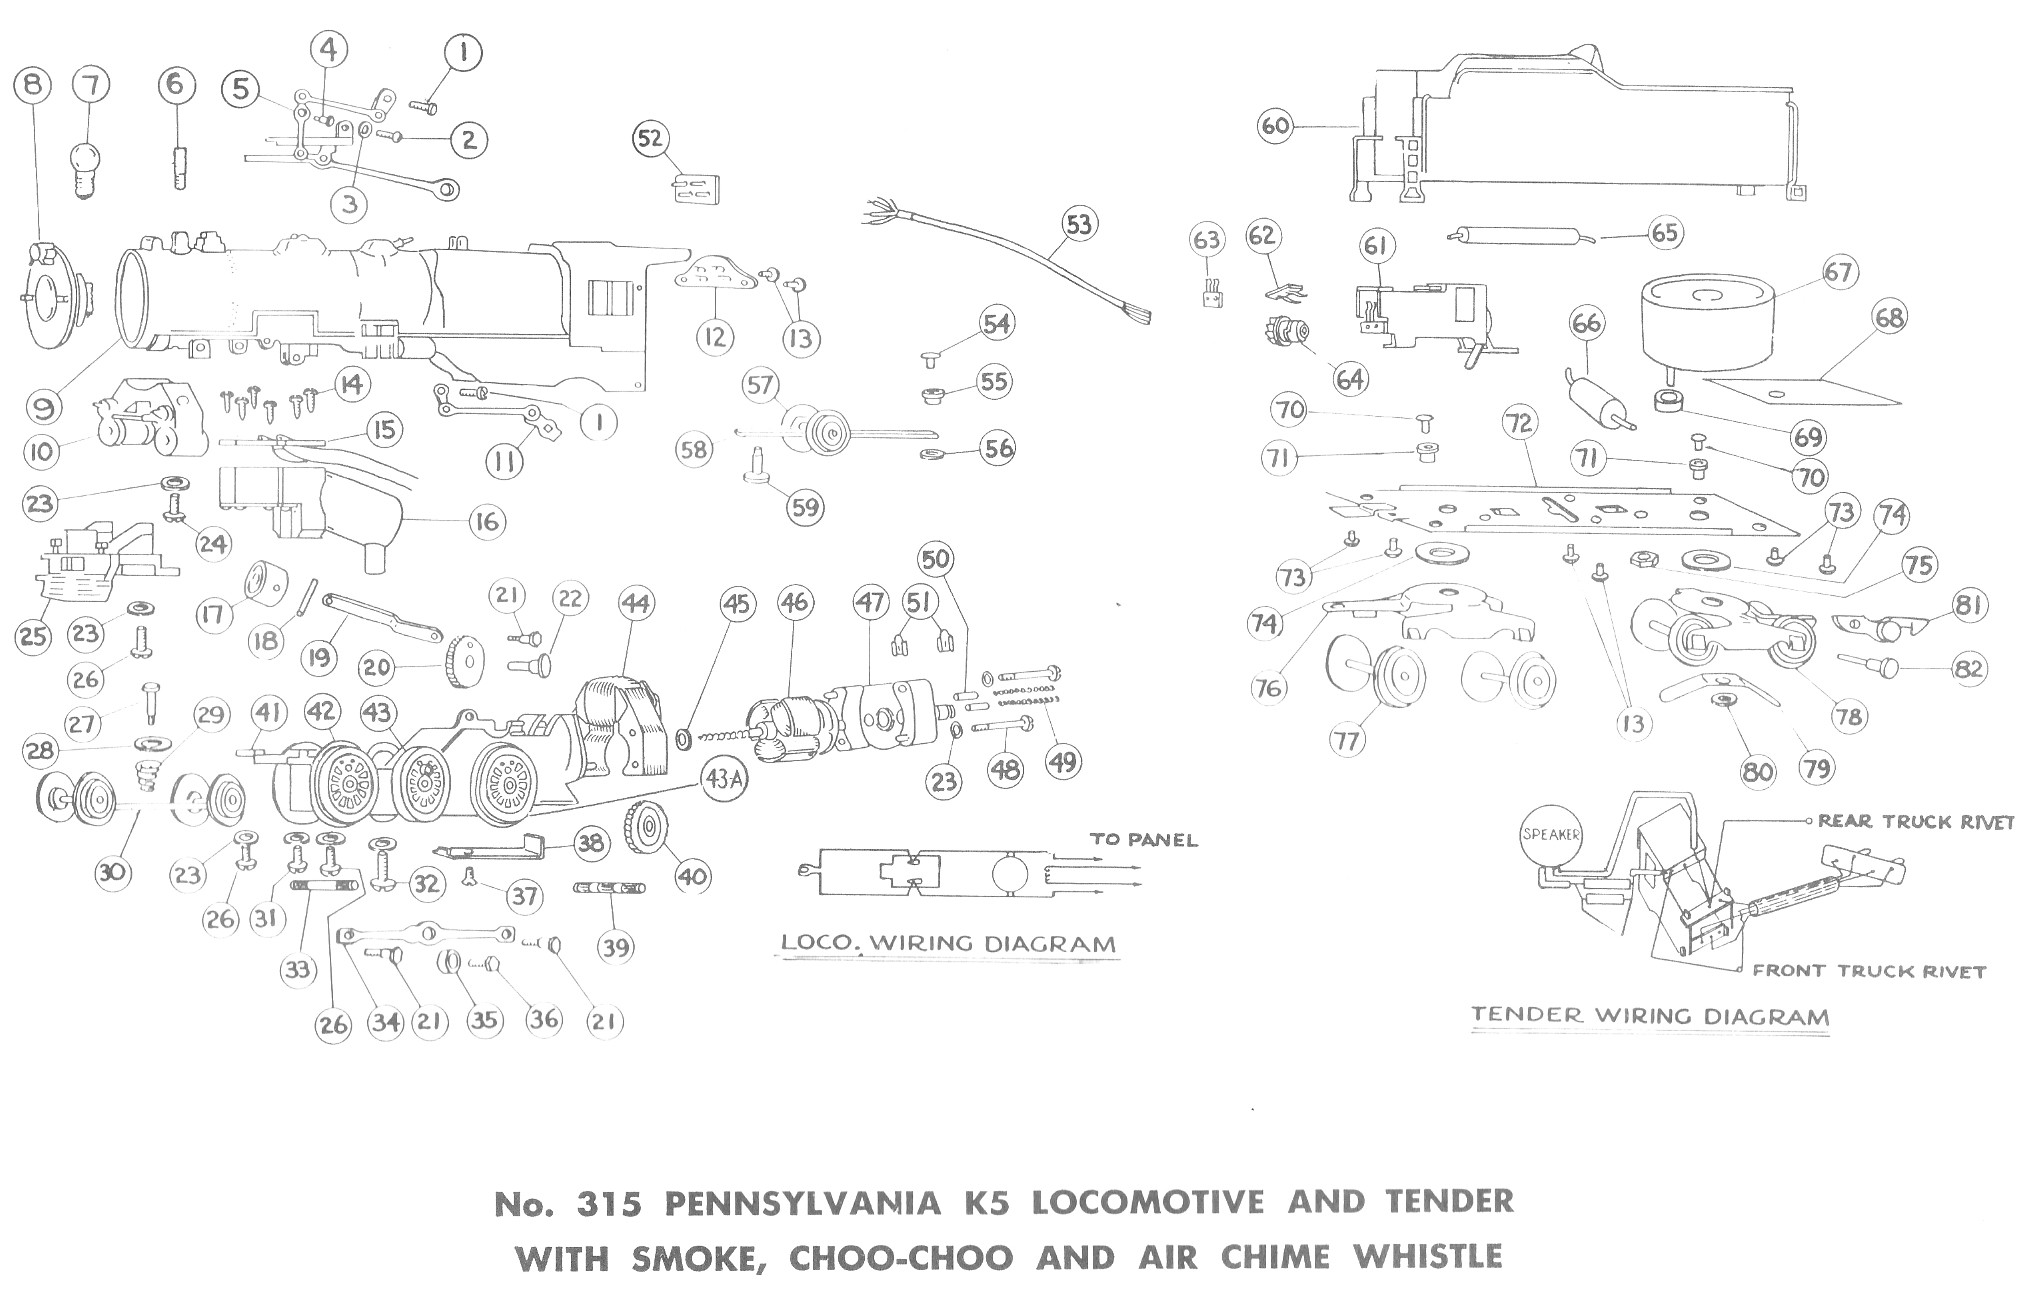 American Flyer Locomotive & Tender 315 Parts List and Diagram - Page 2